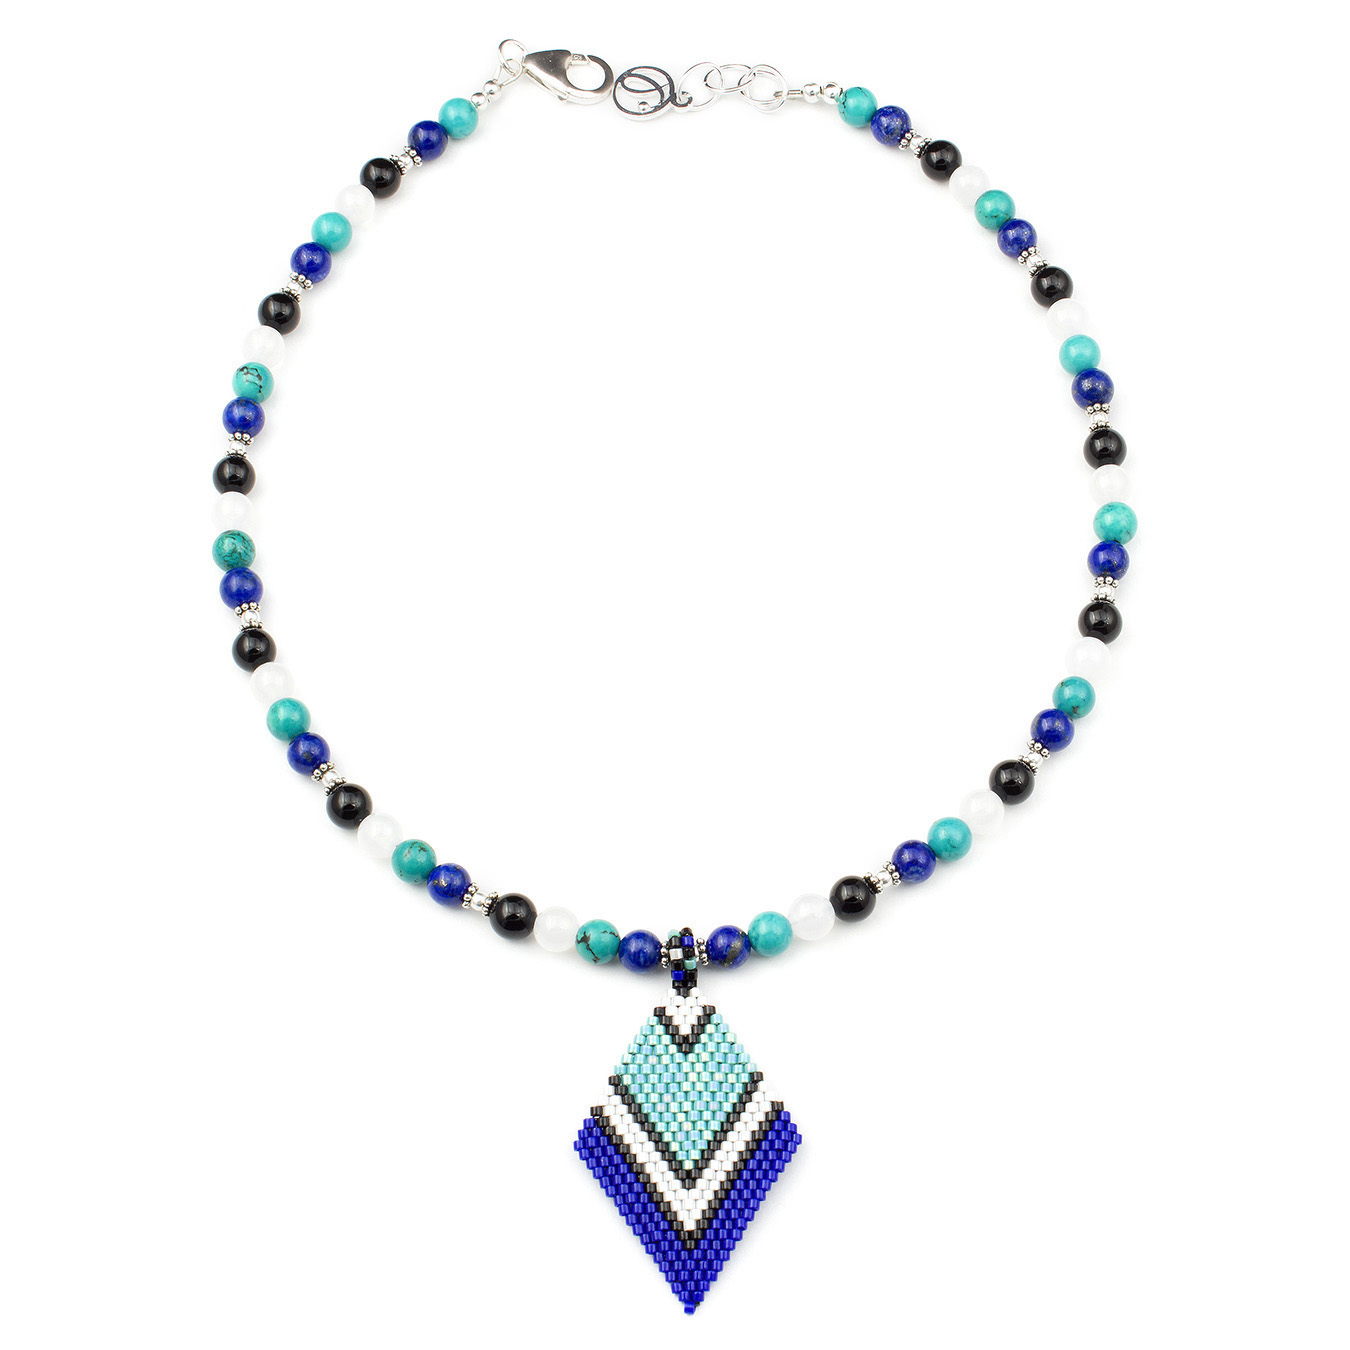 Create your own miyuki necklace with agate, lapis, and turquoise